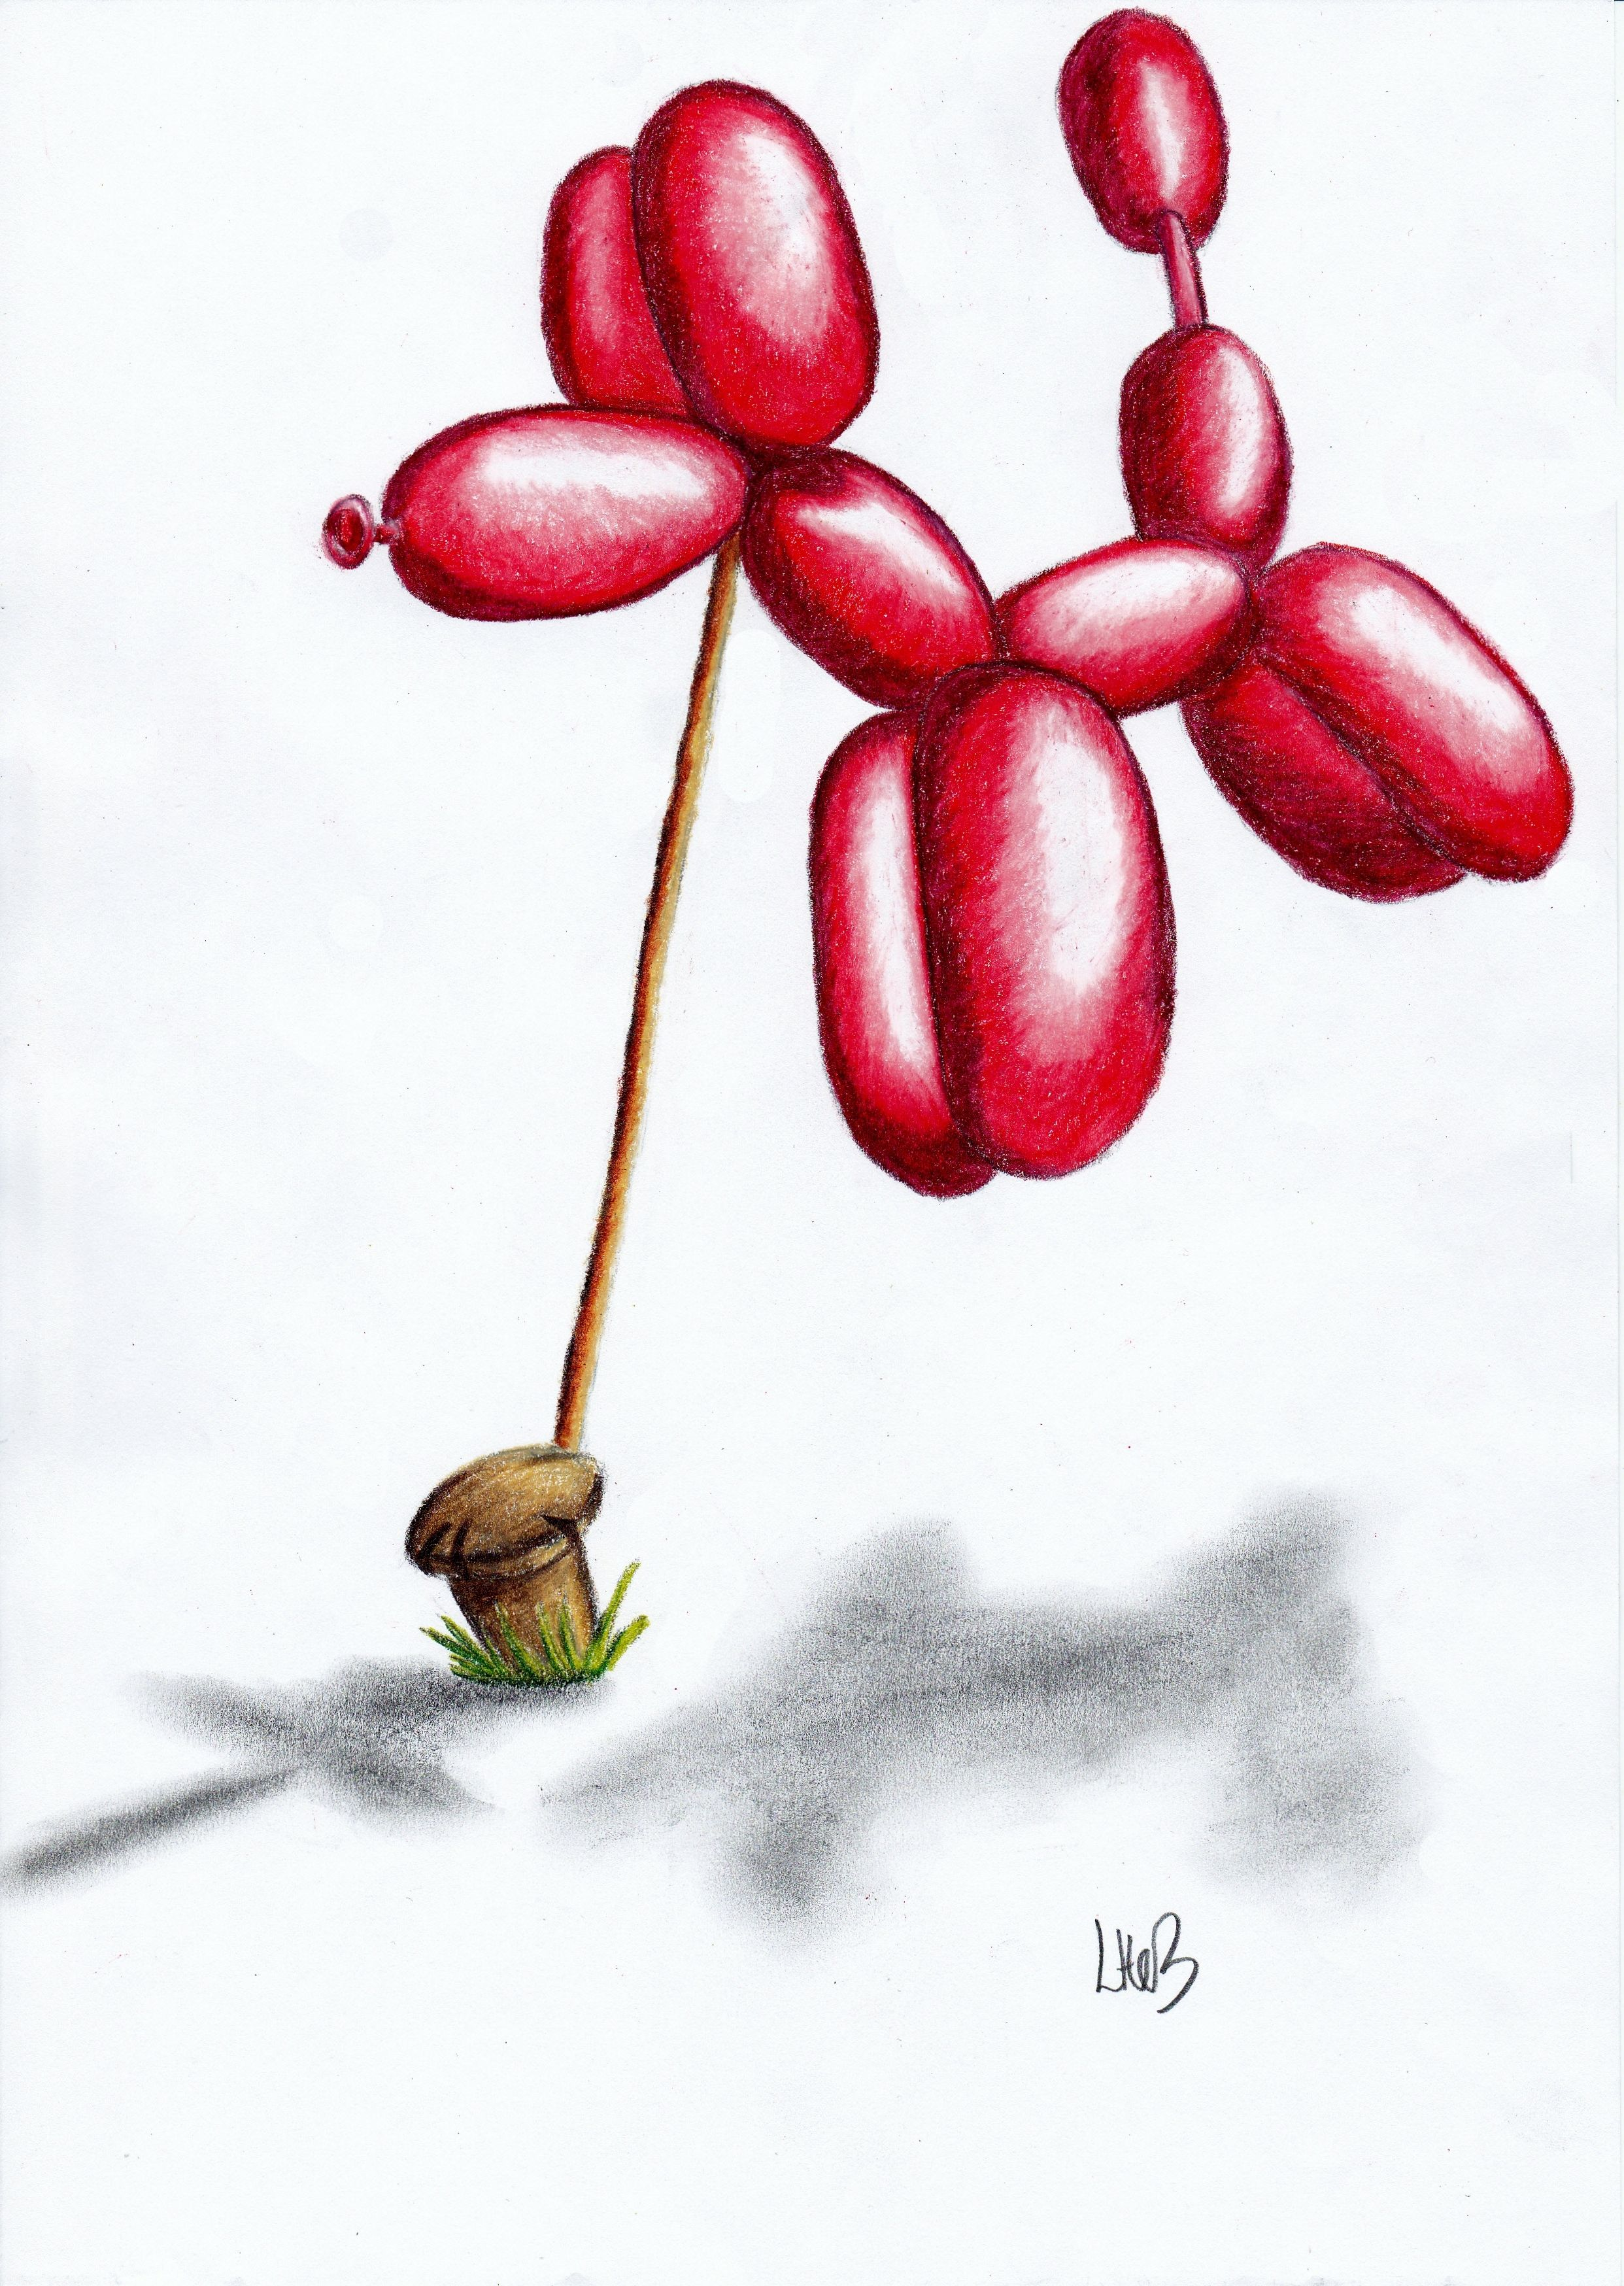 Balloon dog colour pencil drawing on copy paper watch the step by